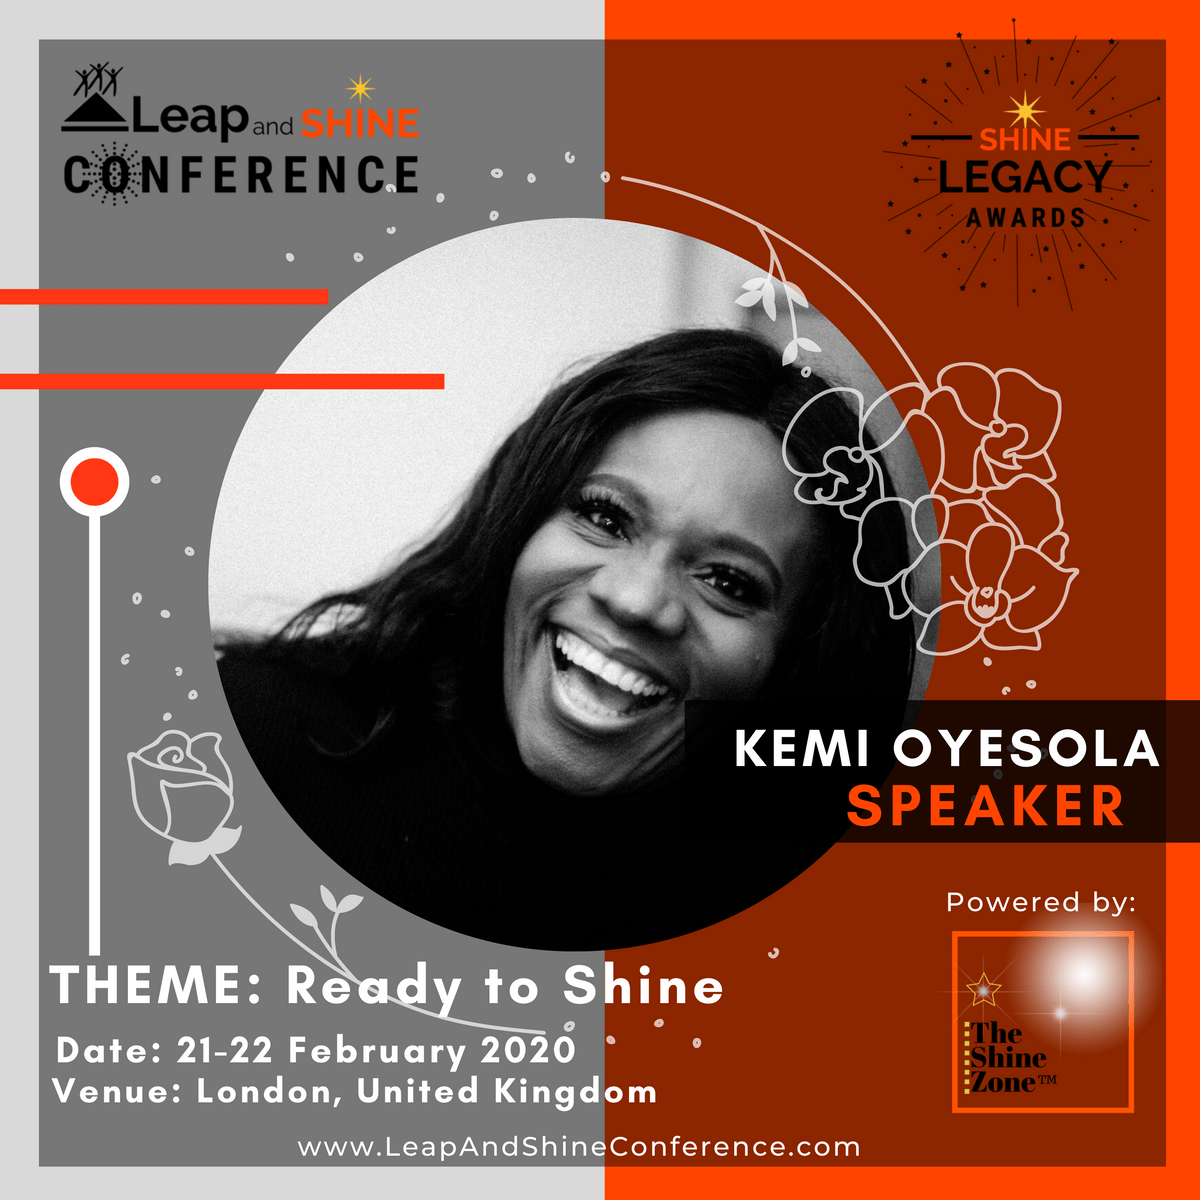 Kemi Oyesola is speaking at the Leap and Shine Conference 2020